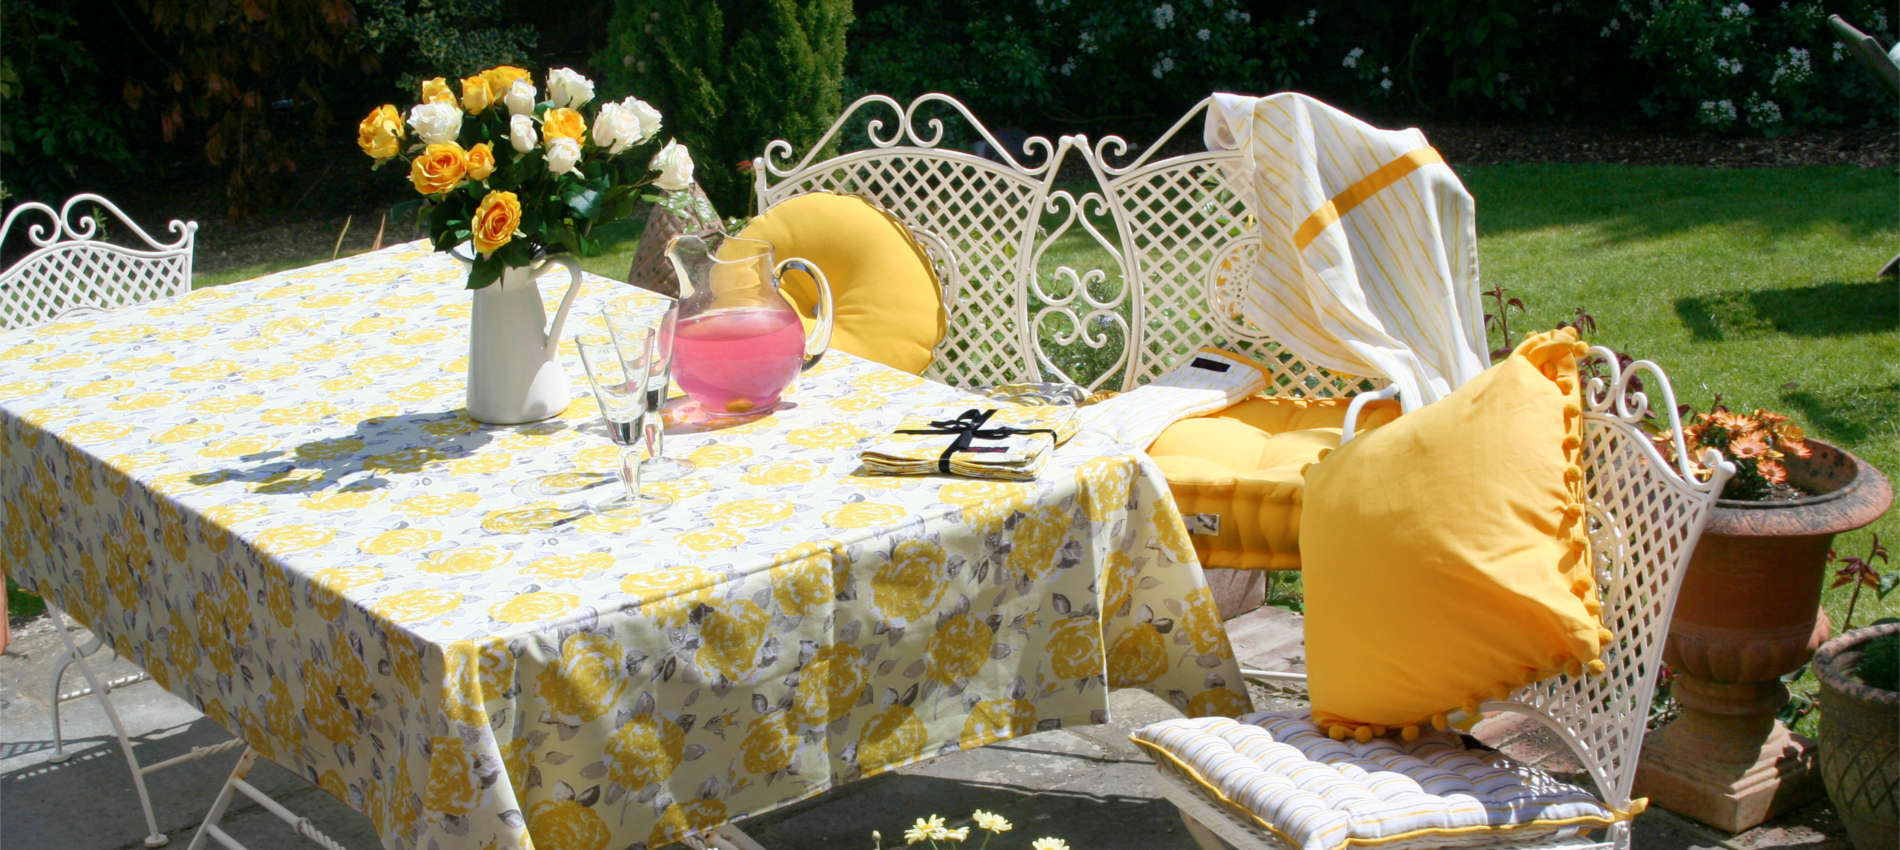 Welcome the Summer with yellow cushions and kitchen accessories from ragged rose